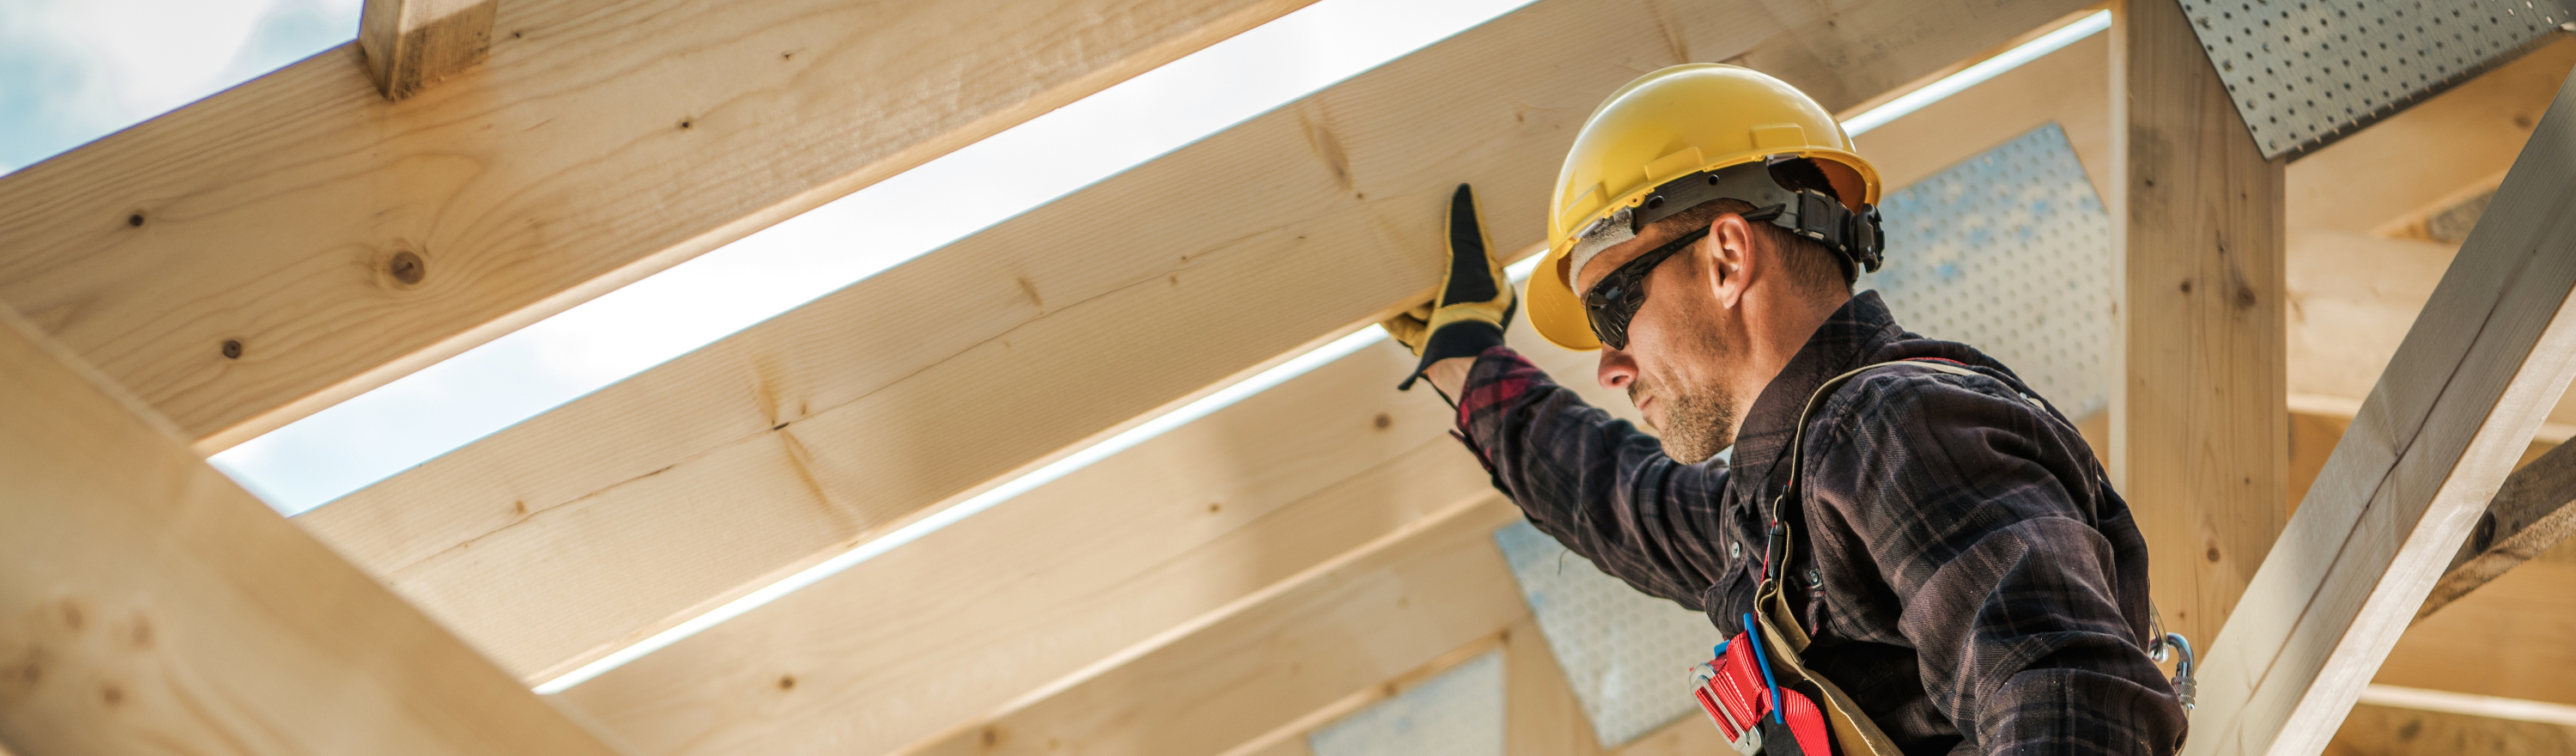 Handyman wearing hard hat fixing rafters of roof needs Tax Relief USA